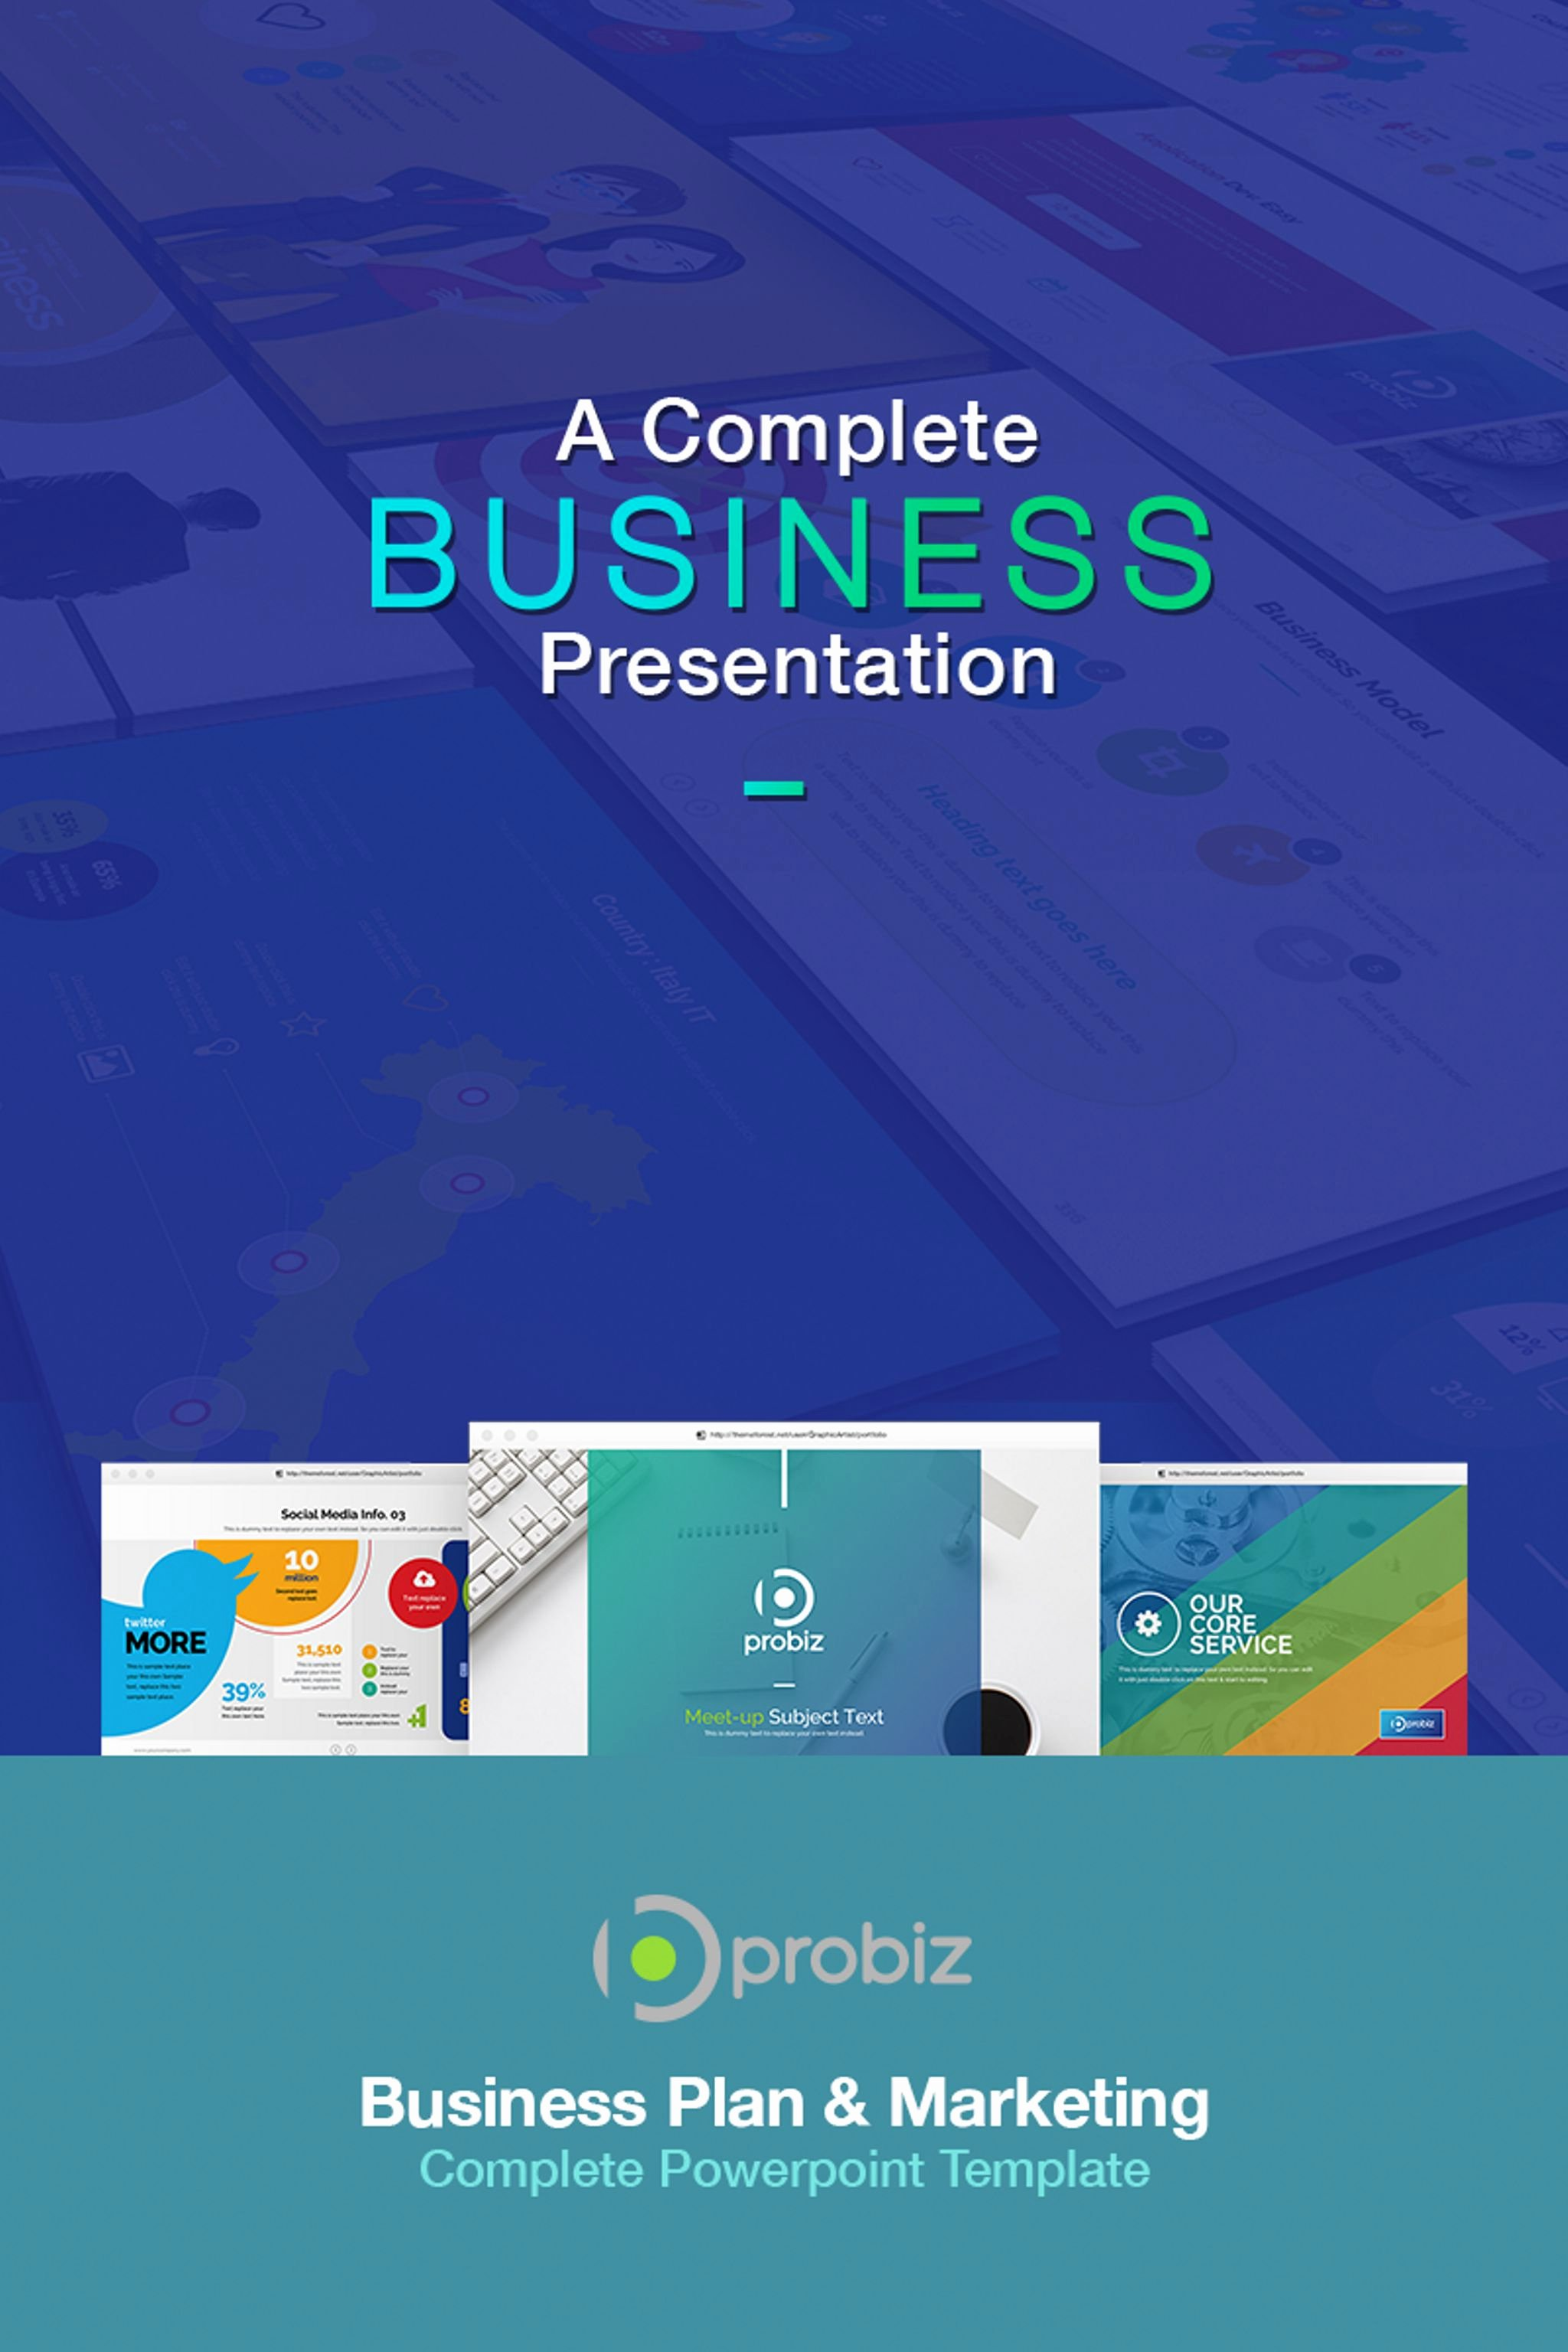 Marketing Plan Powerpoint Template Lovely Business Plan & Marketing Powerpoint Template